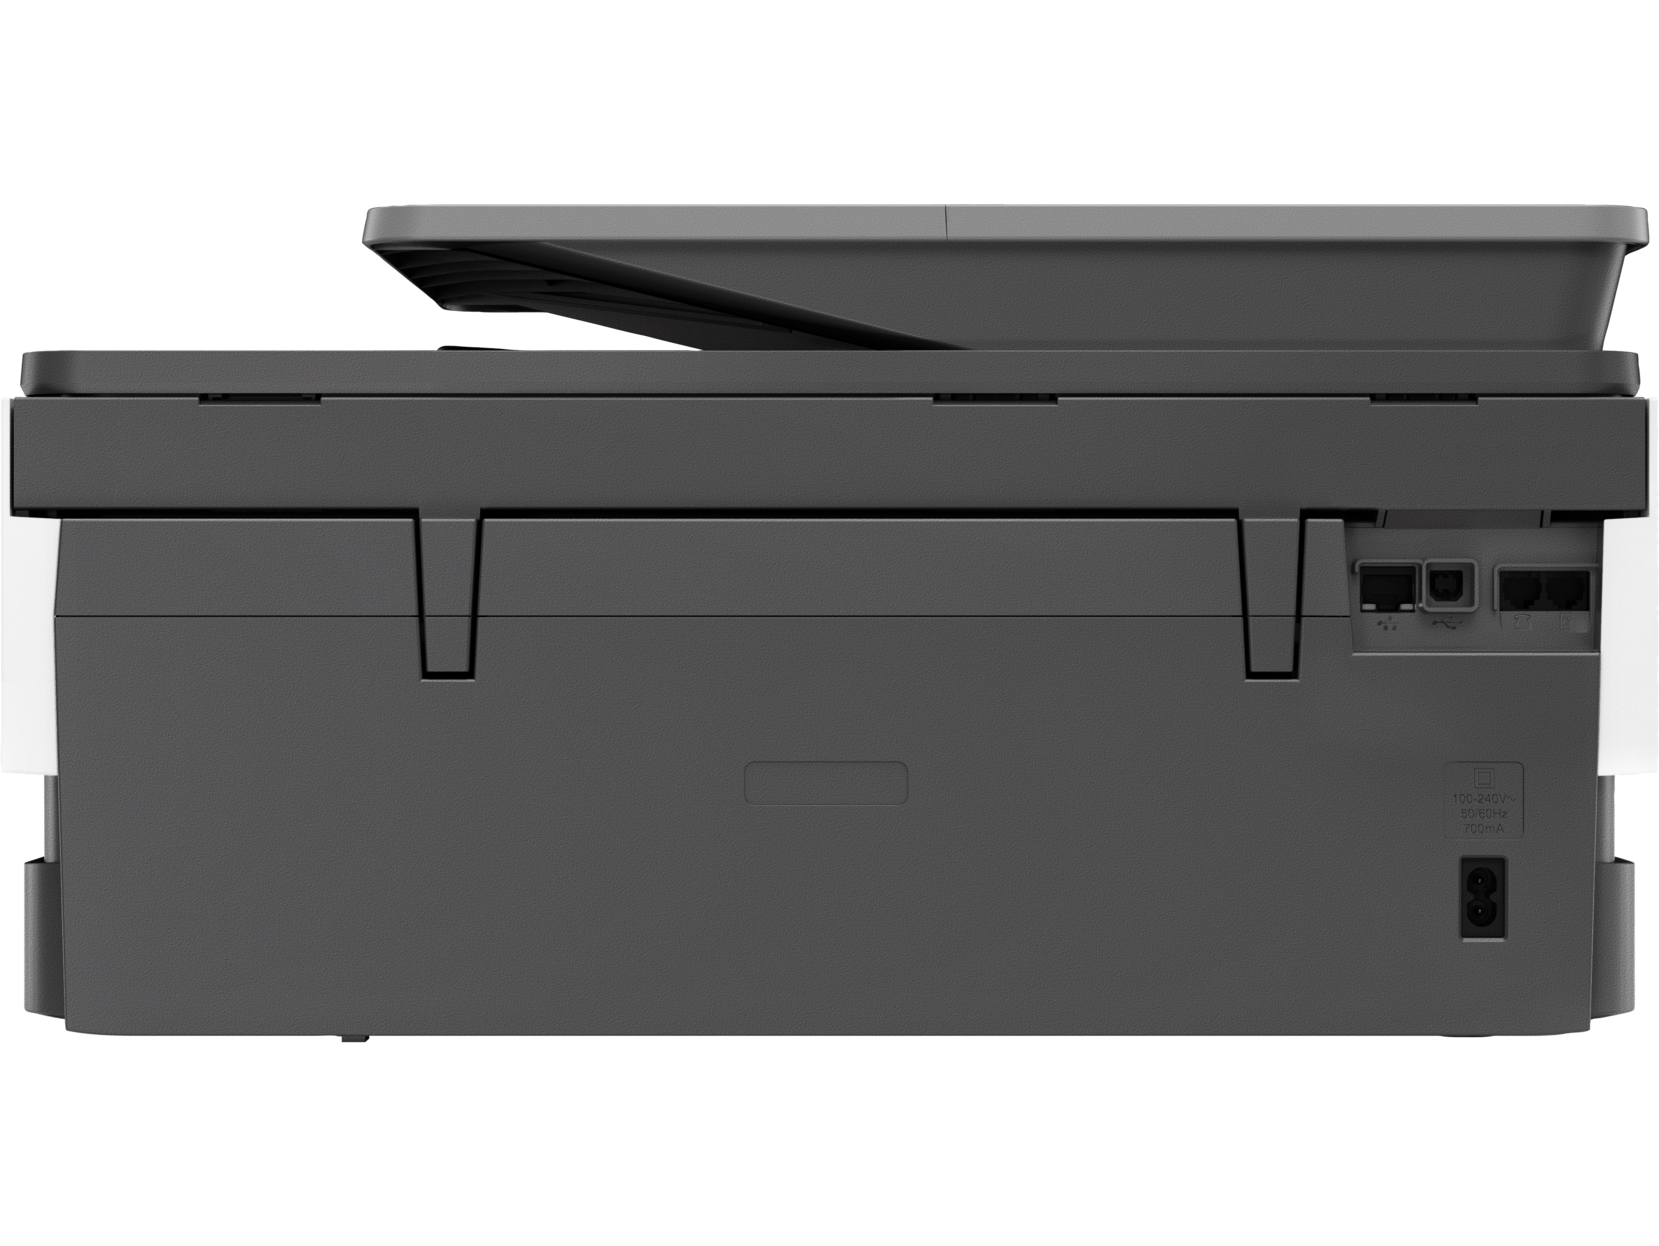 МФУ HP OfficeJet 8013 1KR70B